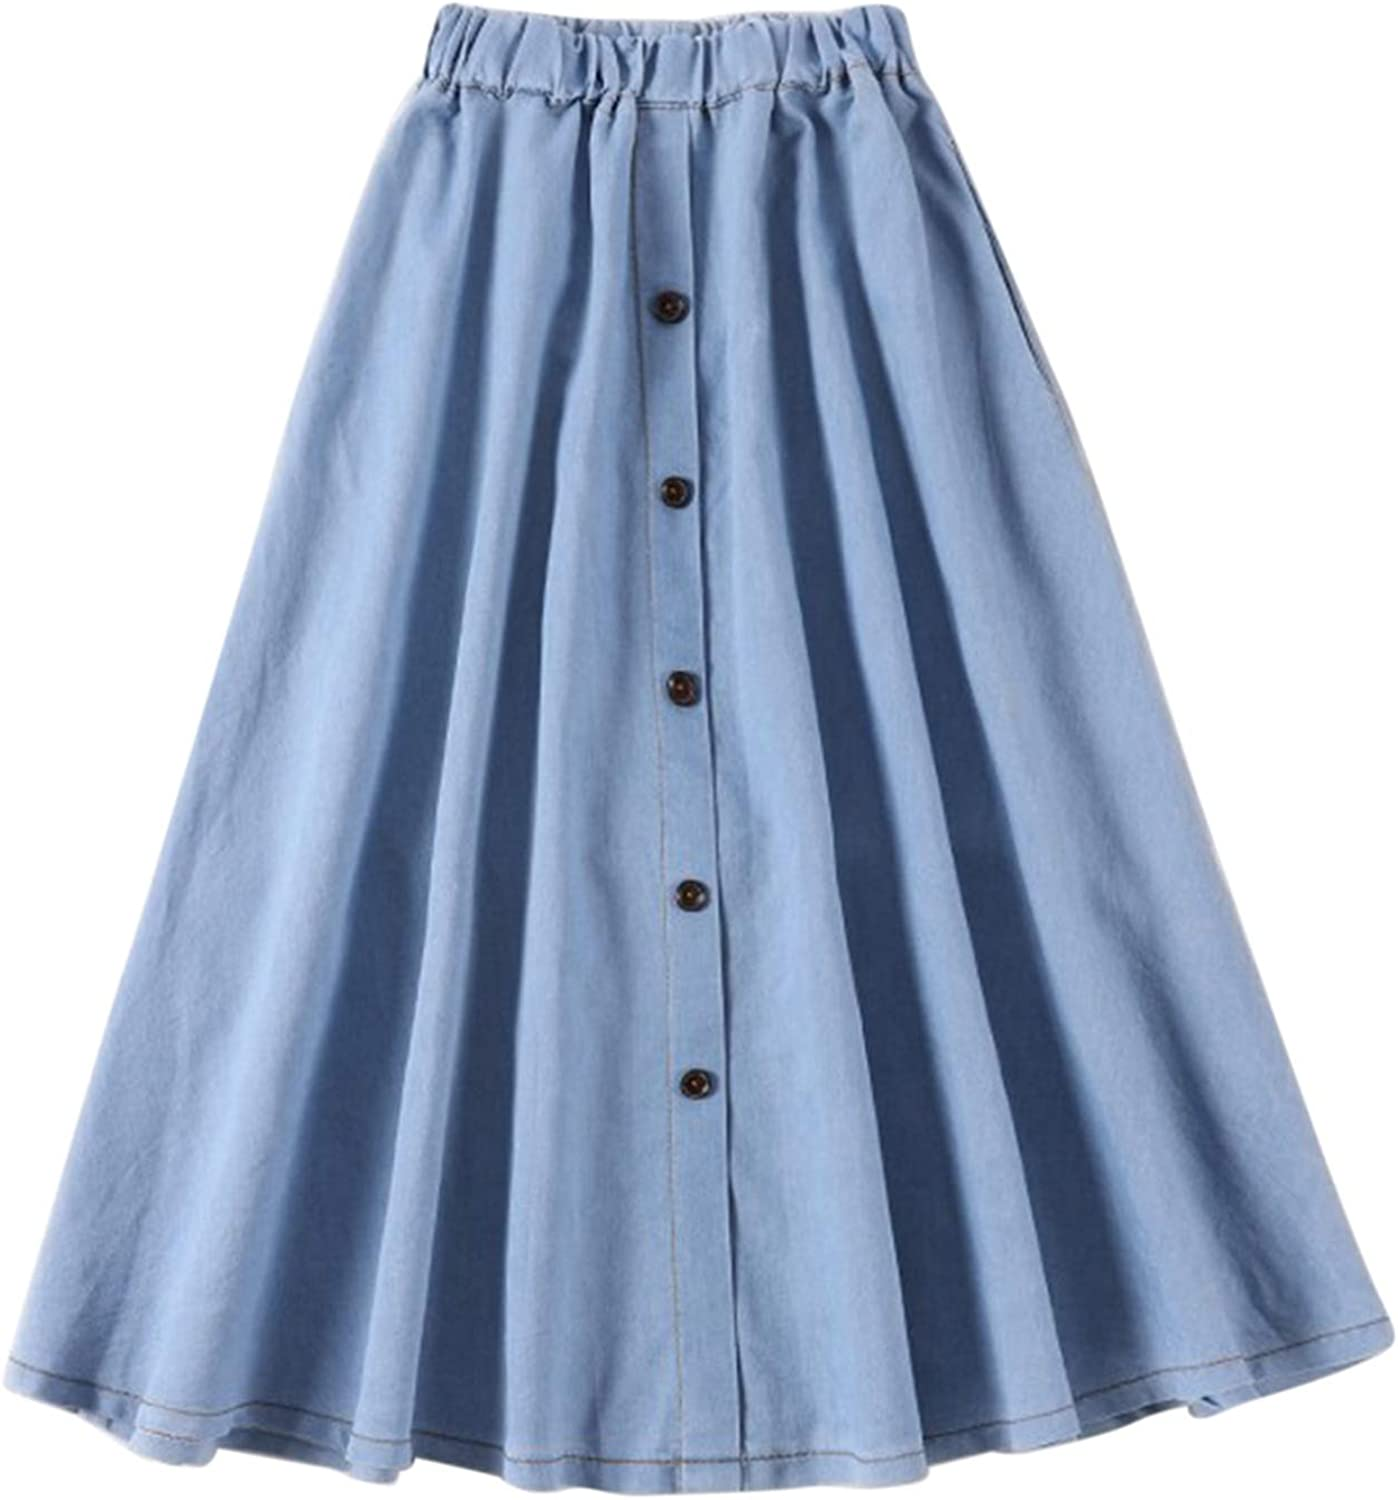 jxxiatang New Womens Casual Denim Long Skirts Party Cocktail Evening Dresses Outfits Clothes